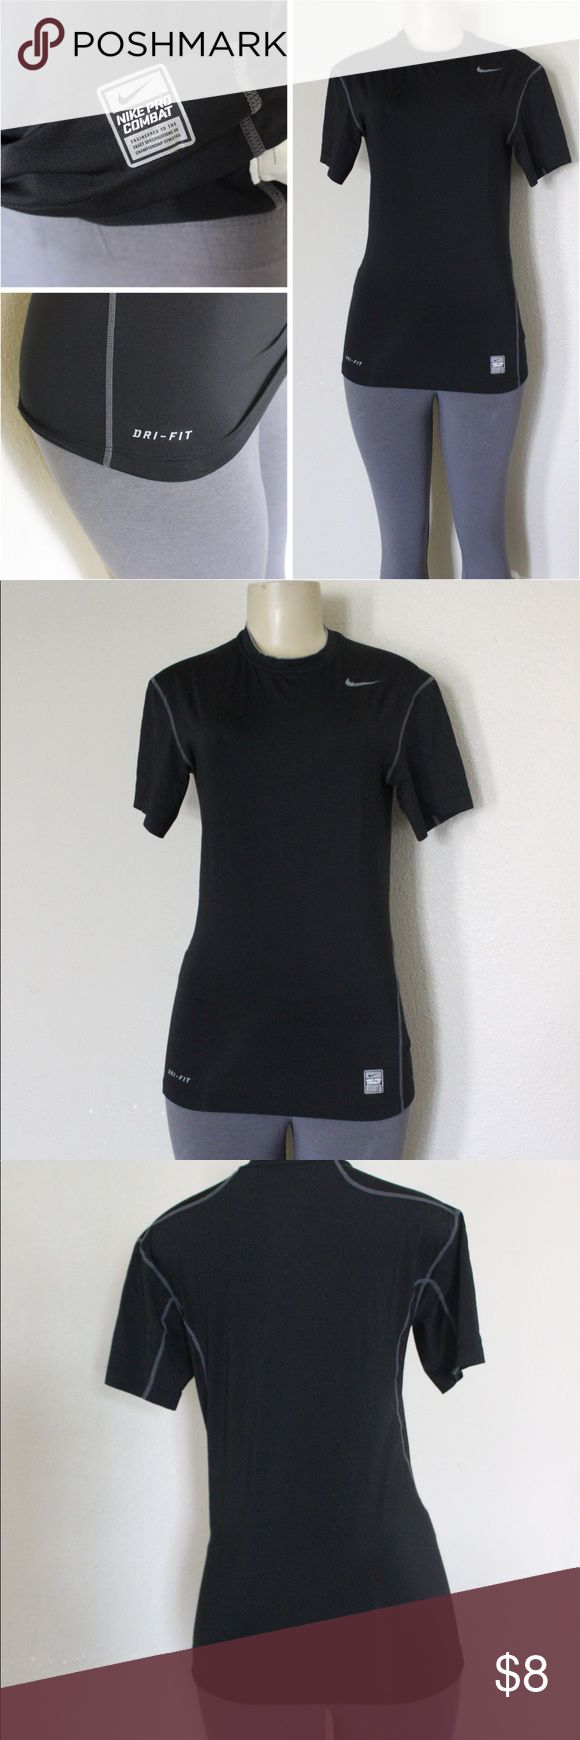 Nike Pro Combat Dry Fit Nike pro combat dri fit workout shirt size L, has dri fit logo on bottom left and Nike pro combat logo on bottom right, on the neck there is also multiple Nike logos going around the neck as seen in the last picture, very lightweight material, and is a fitted shirt,great conditions, gently used ⭐️🖤 Nike Tops Tees - Short Sleeve